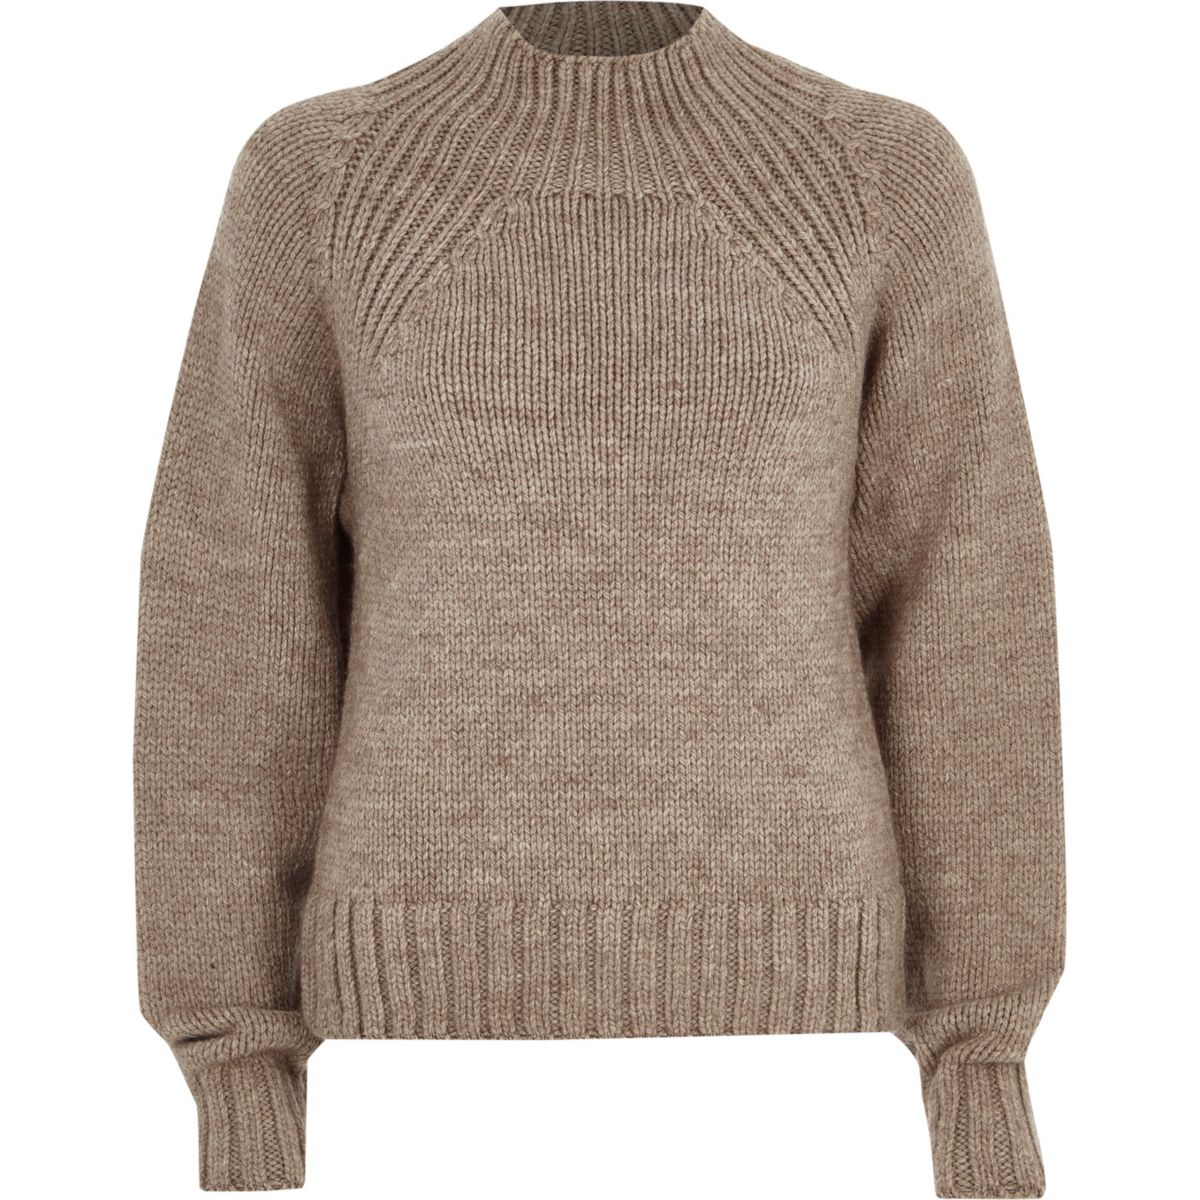 Mink brown high neck chunky knit jumper